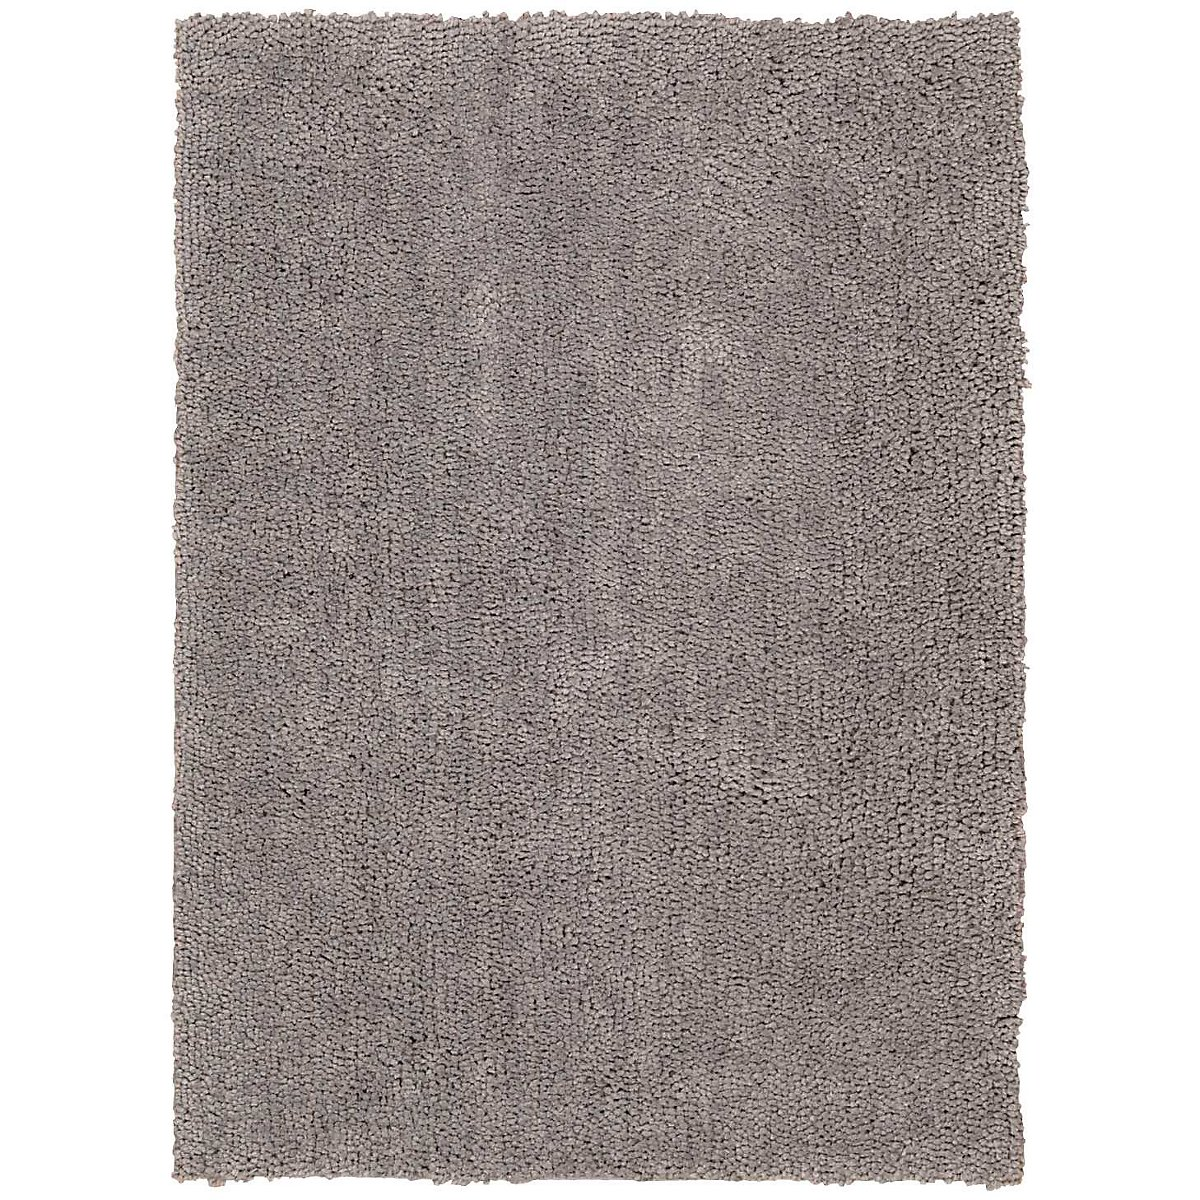 City Furniture Puli Gray 5x7 Area Rug